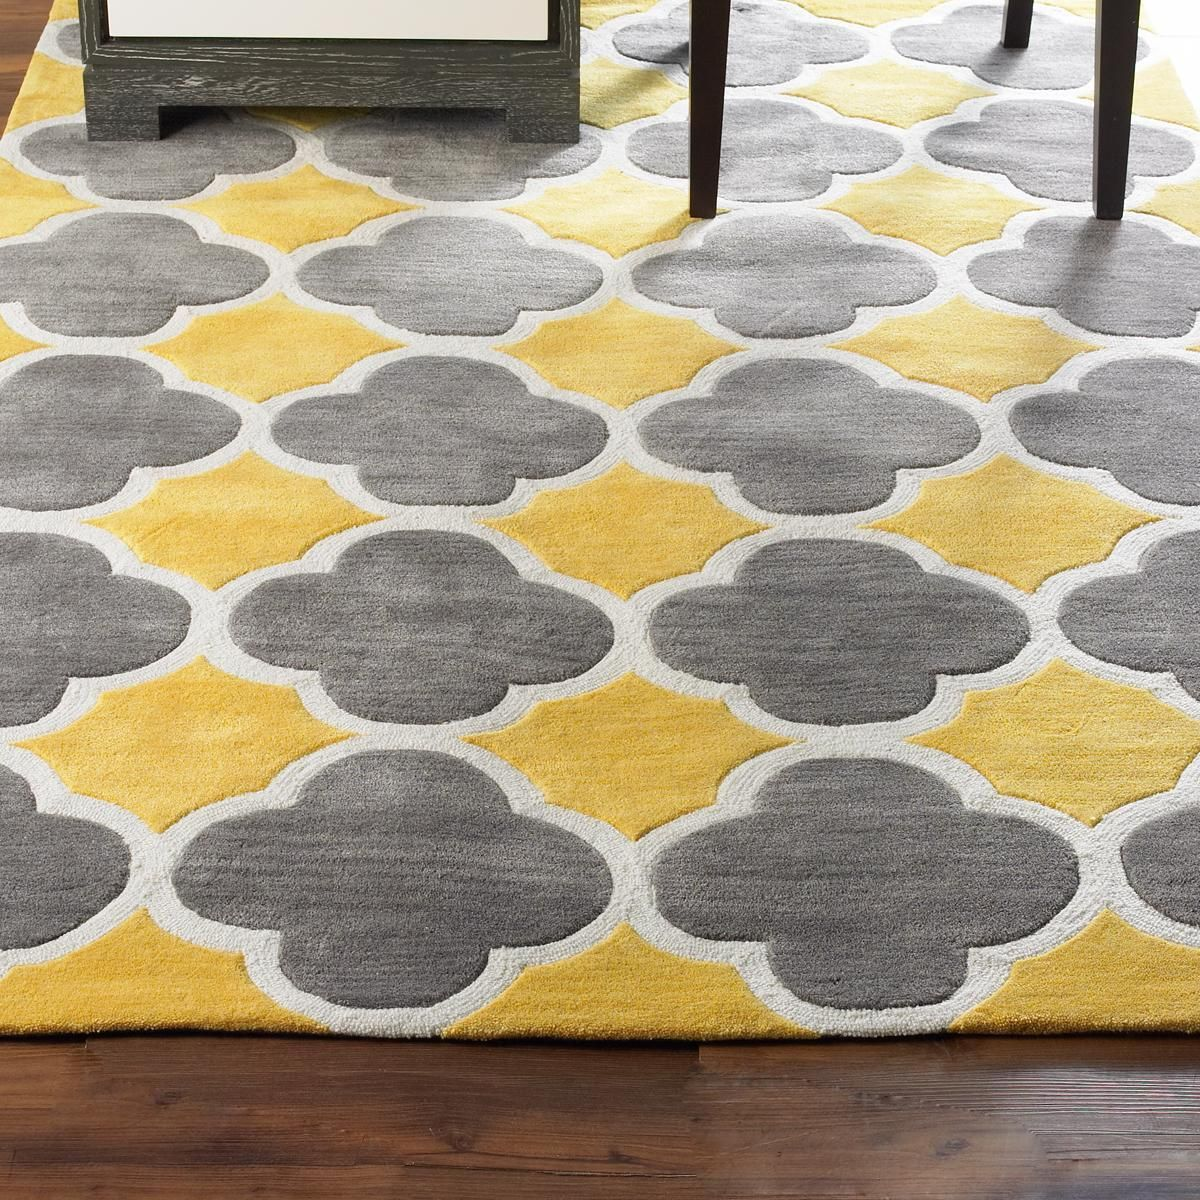 Cloverleaf Quatrefoil With Gray 3 Colors Shades Of L